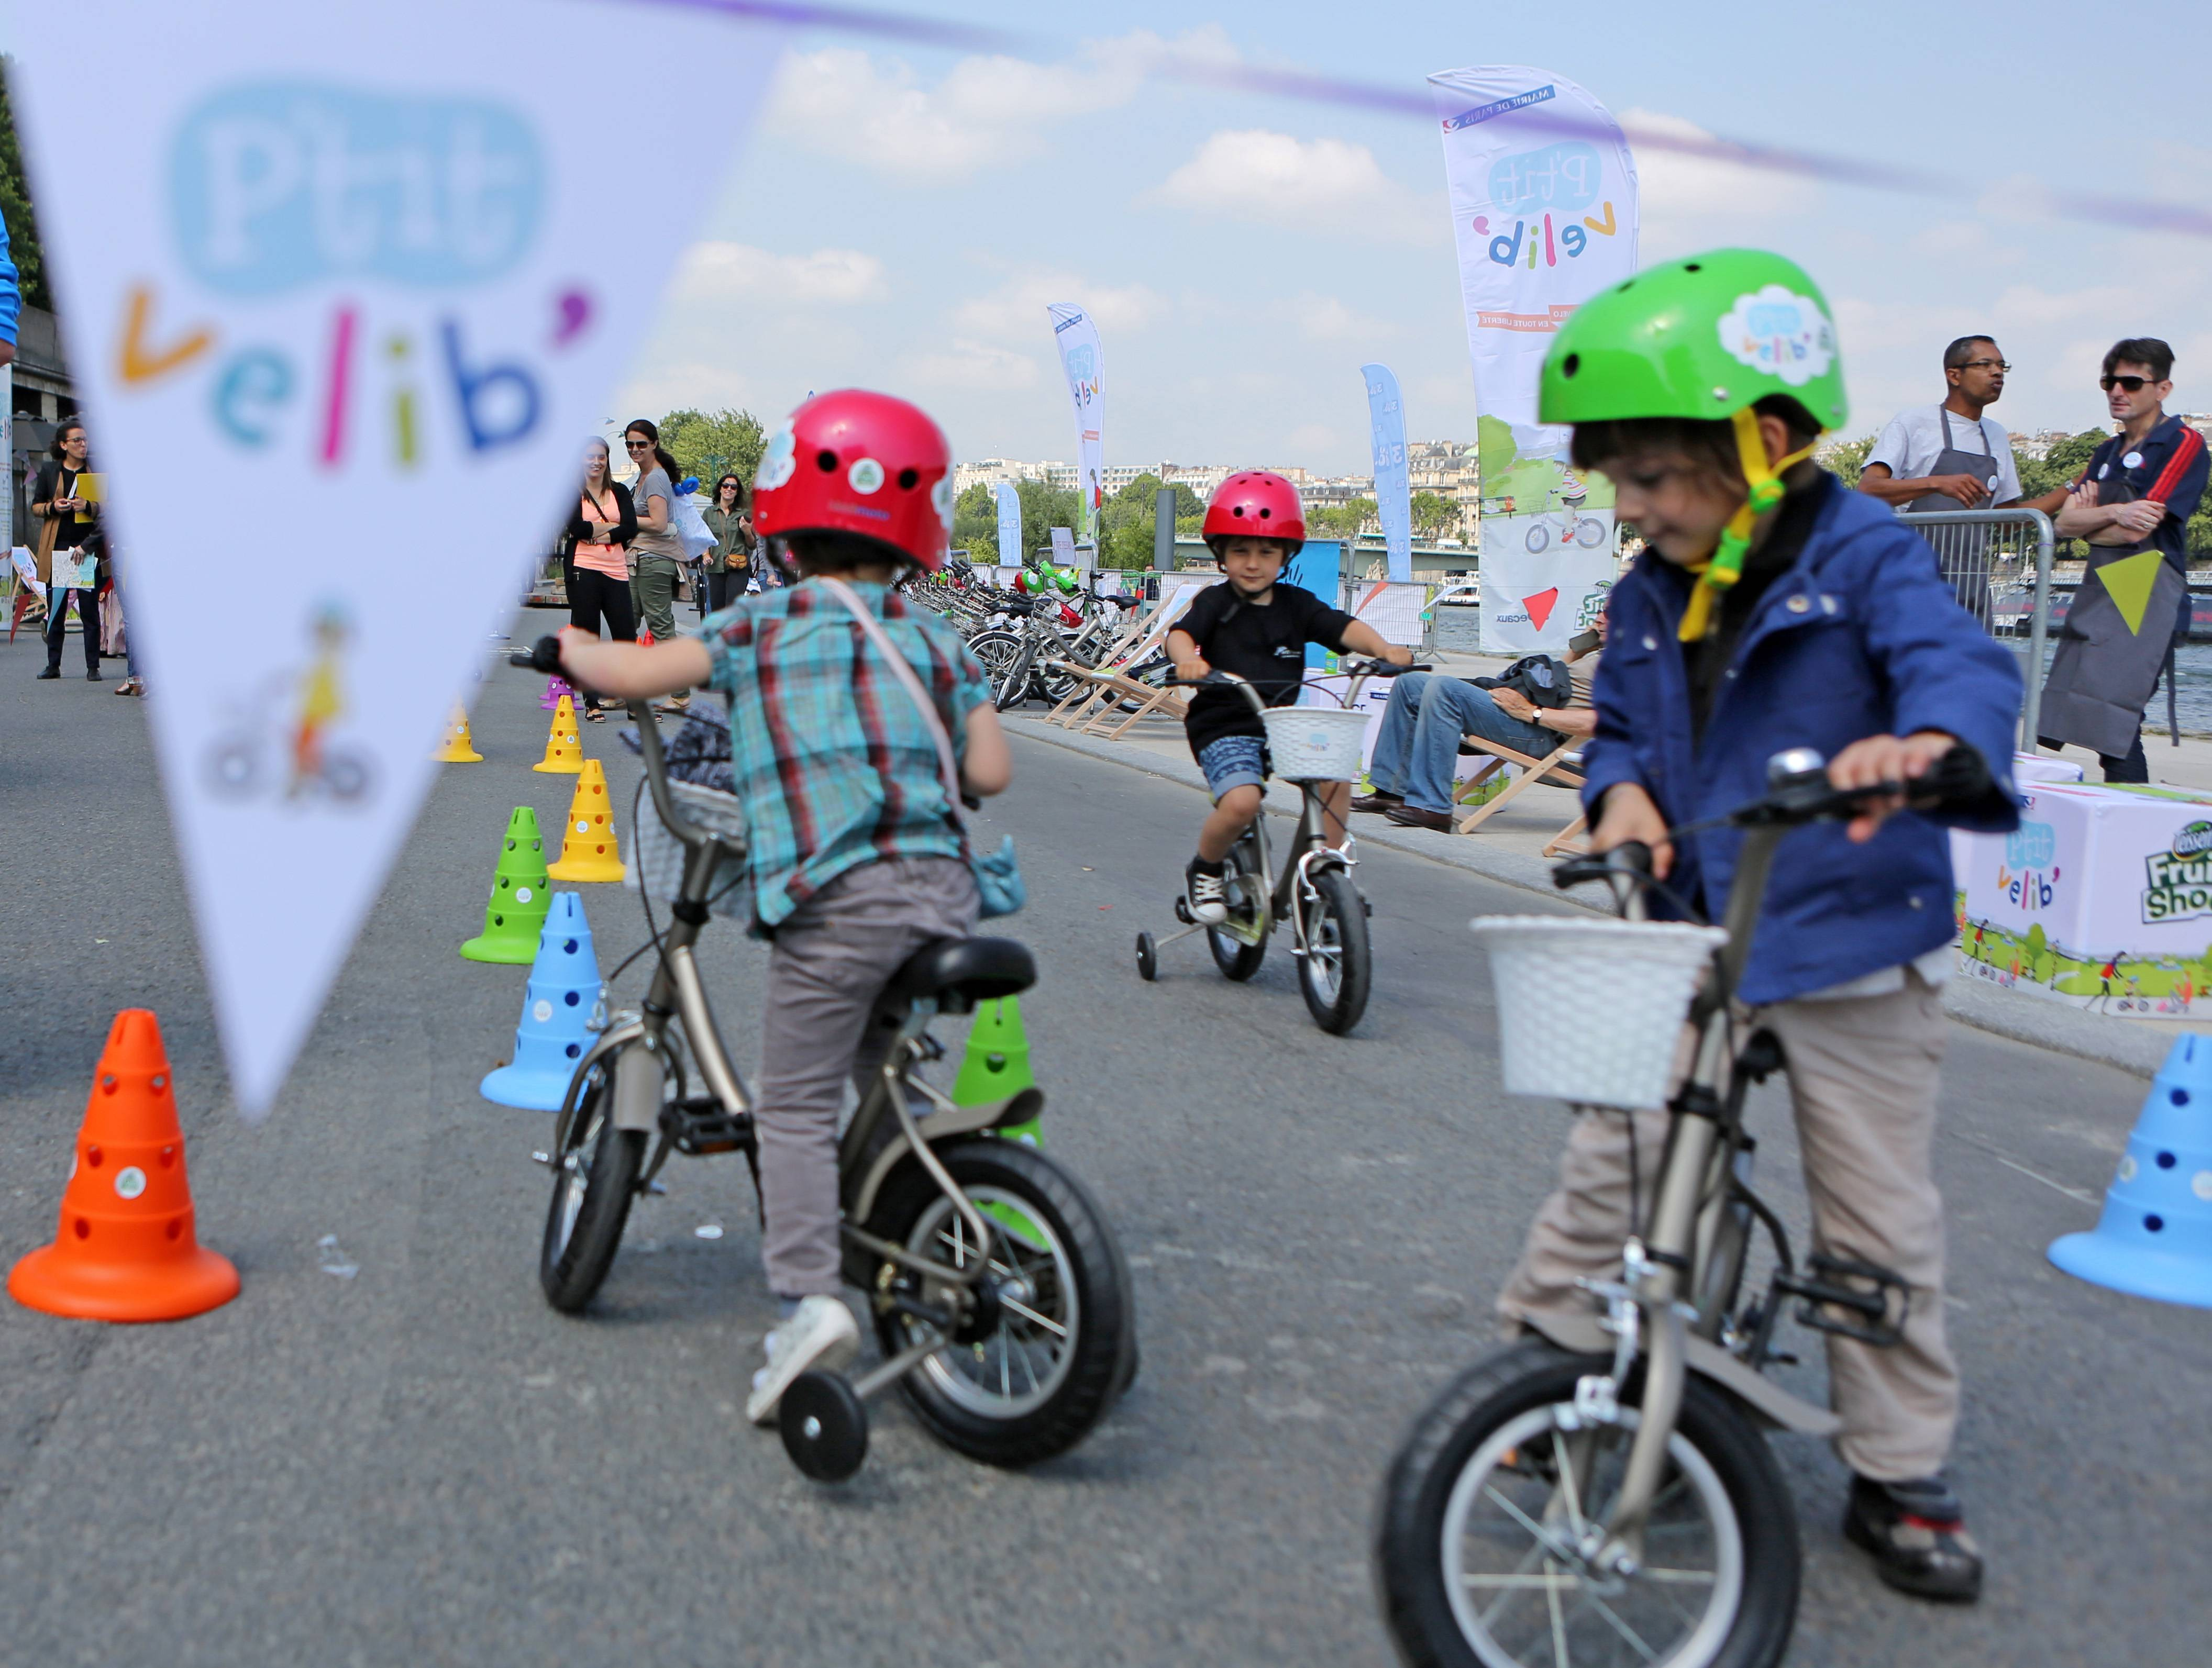 Children ride free bicycles as part of the Little Velib system experiment on the Seine river banks in Paris.